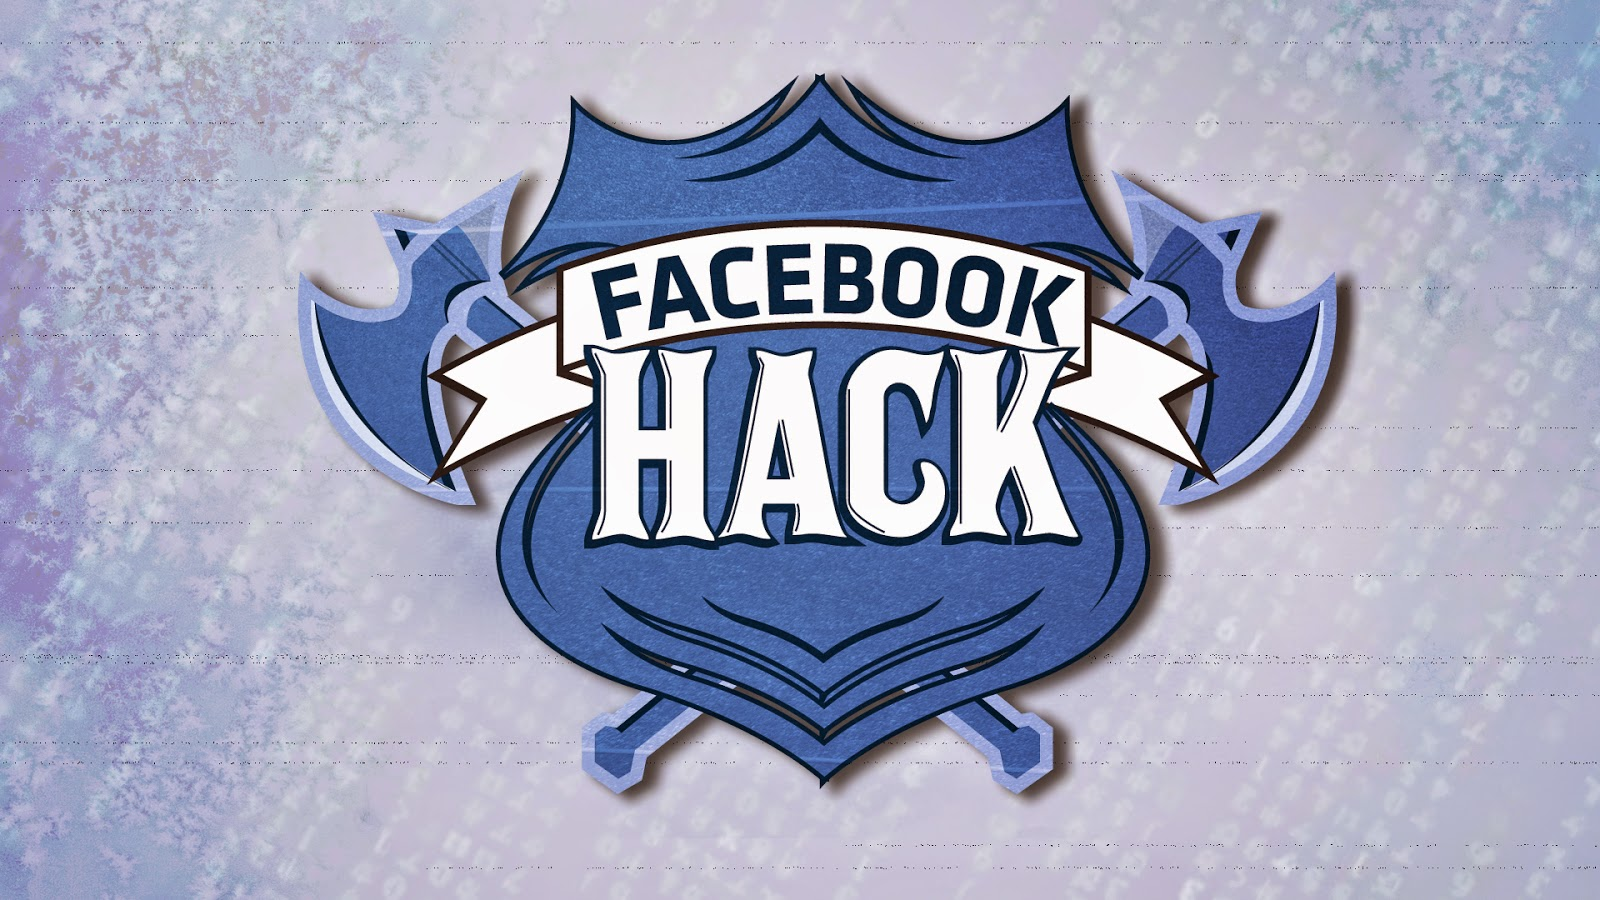 Cara Mudah Membobol Password Facebook Dengan Software